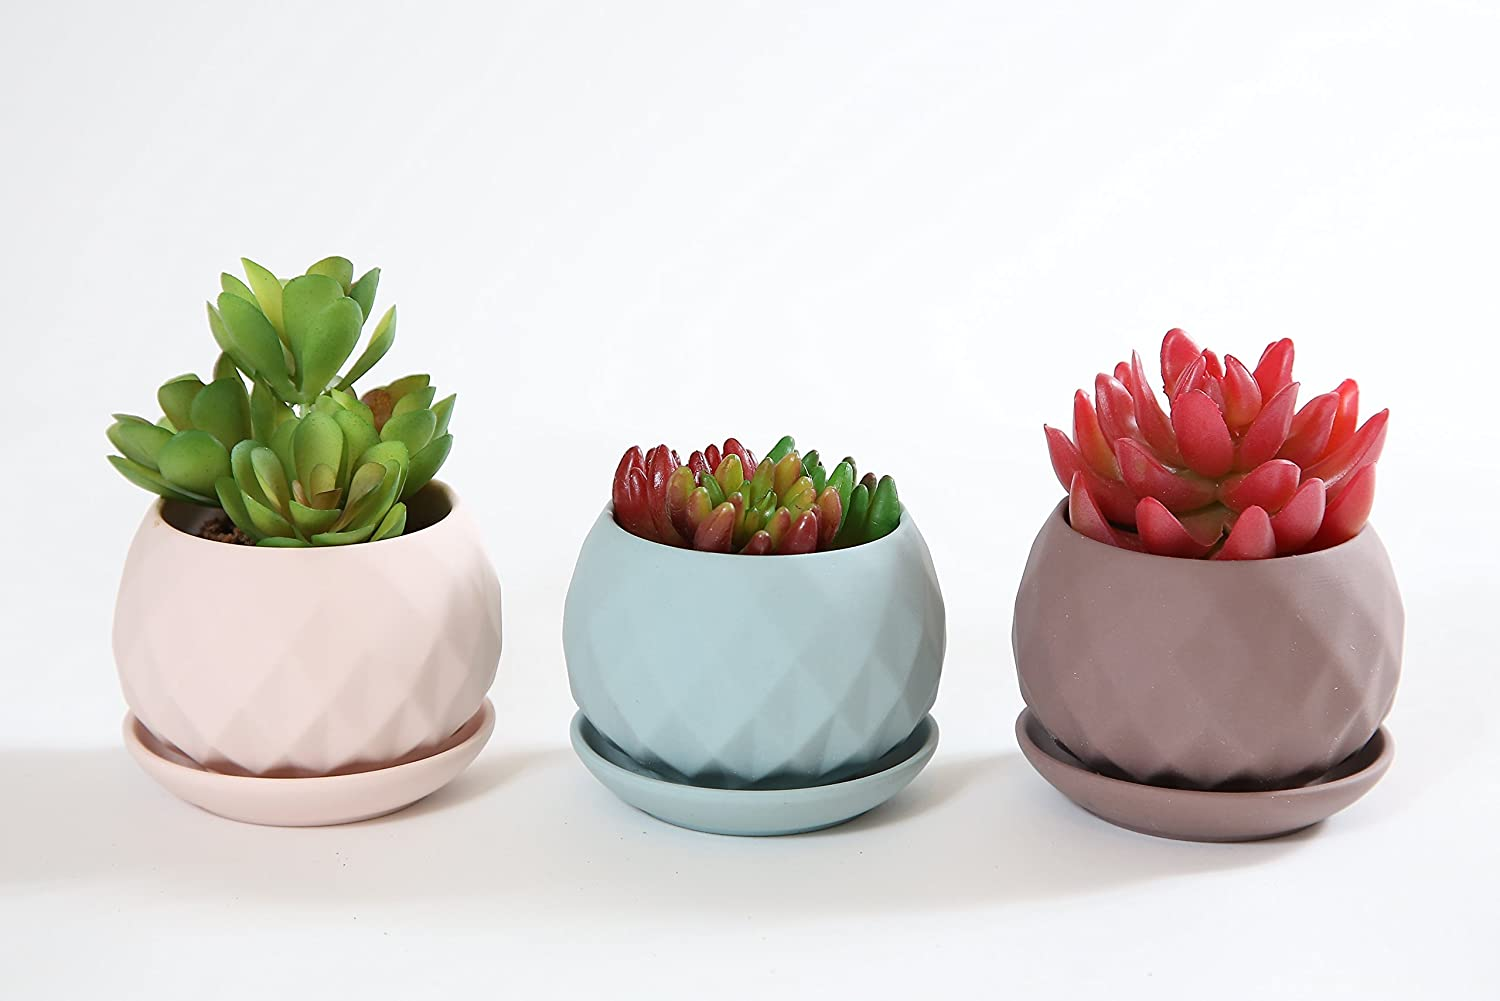 Amazon.com: Succulent Planter Ceramic Pot Set Polygon Style Set of 3 ...